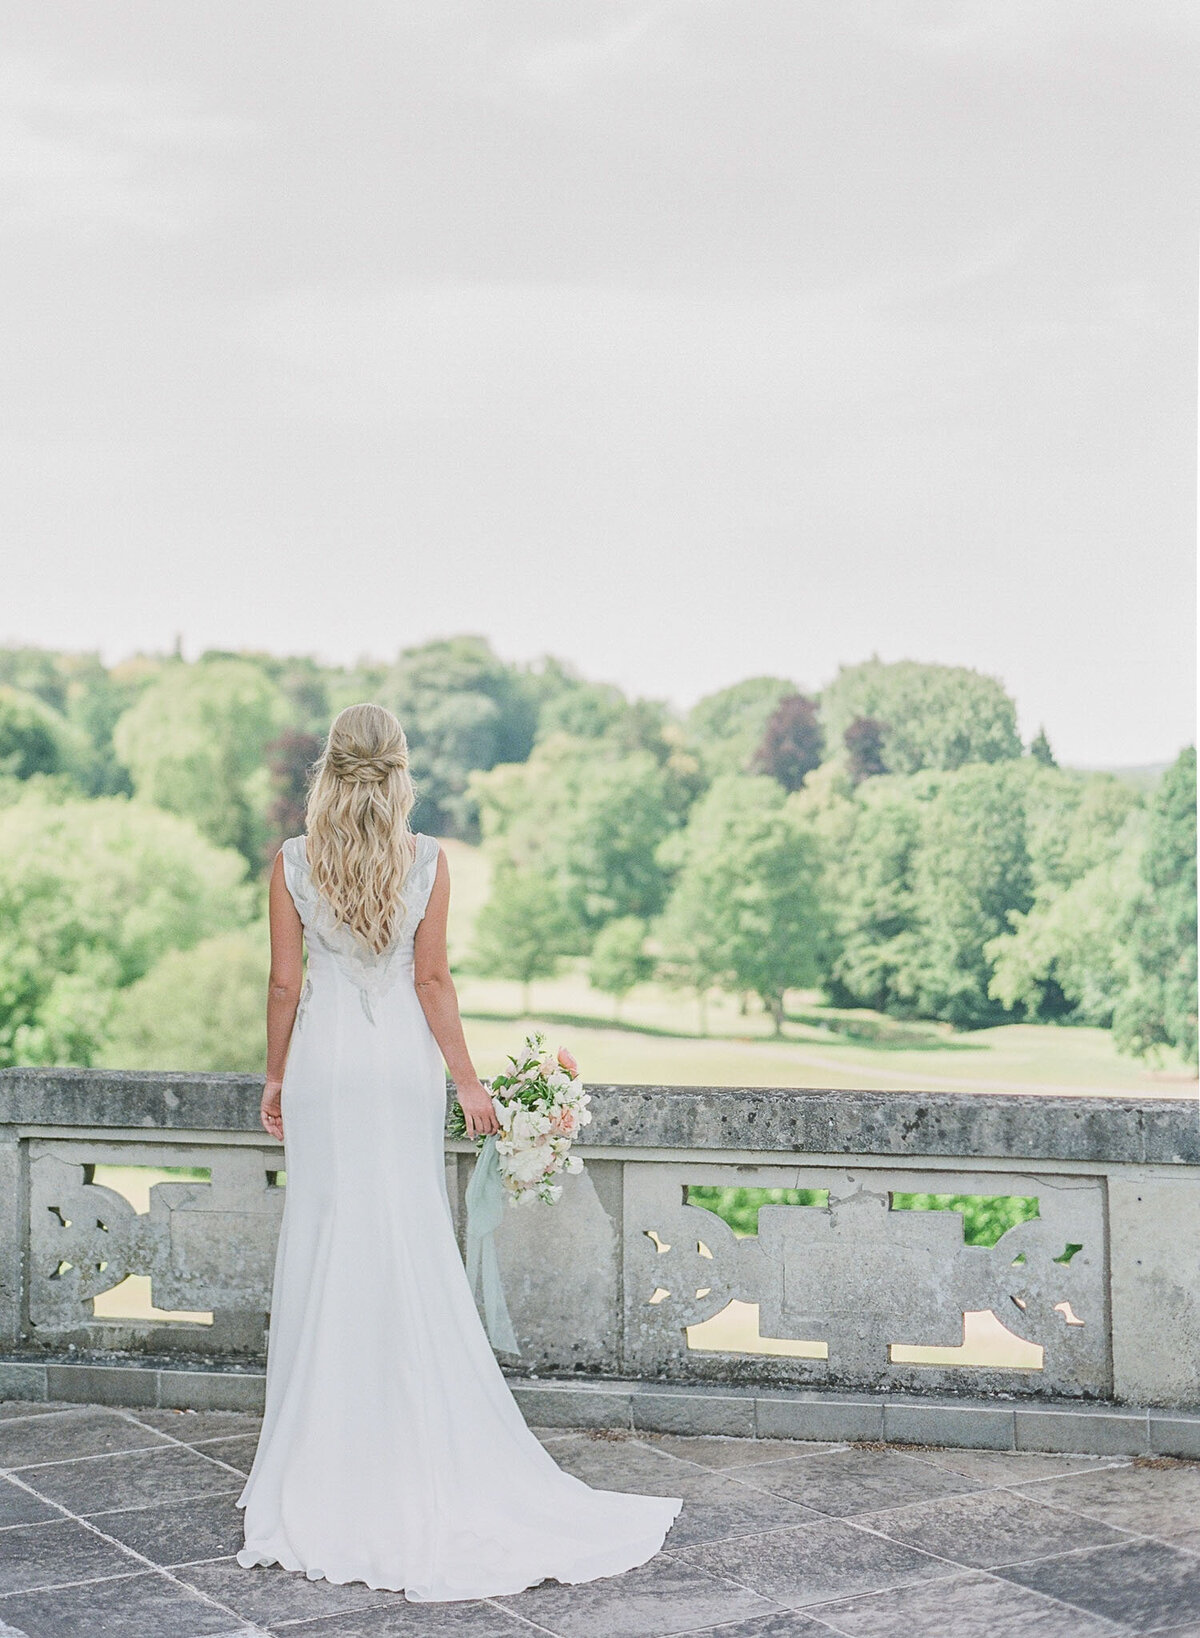 Molly-Carr-Photography-Paris-Wedding-Photographer-25